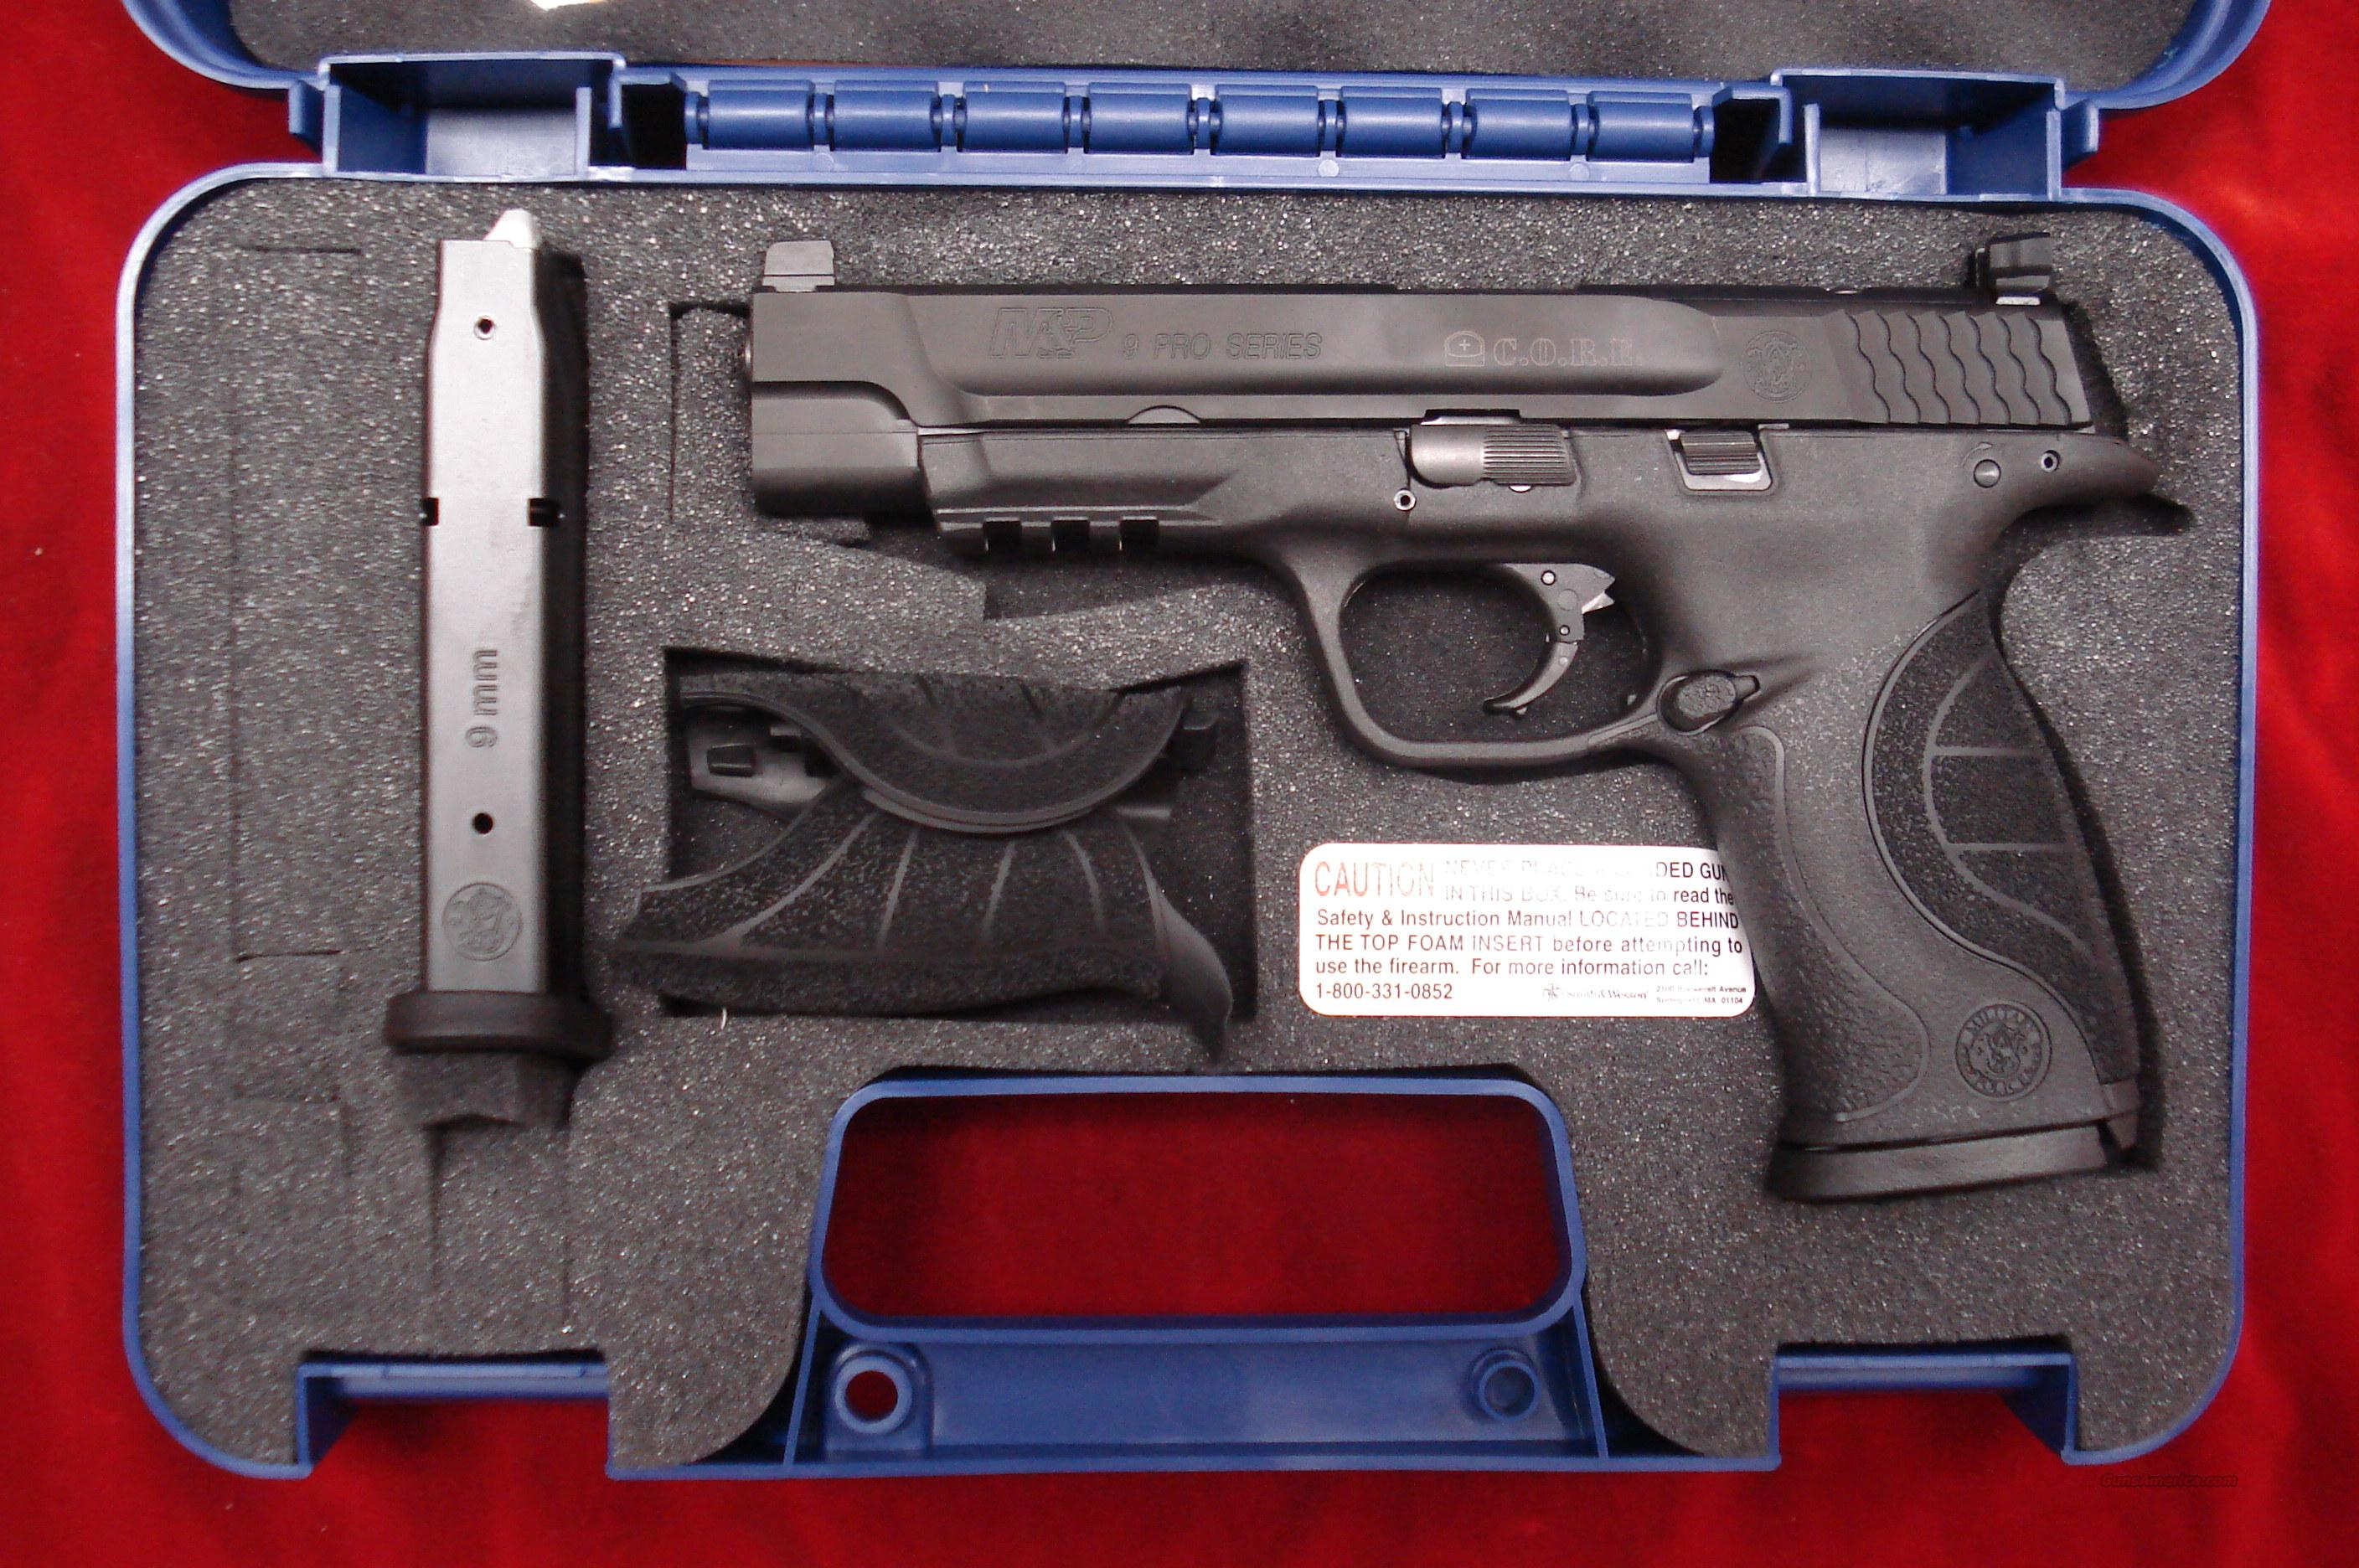 SMITH AND WESSON M&P PRO CORE 9MM NEW  Guns > Pistols > Smith & Wesson Pistols - Autos > Polymer Frame